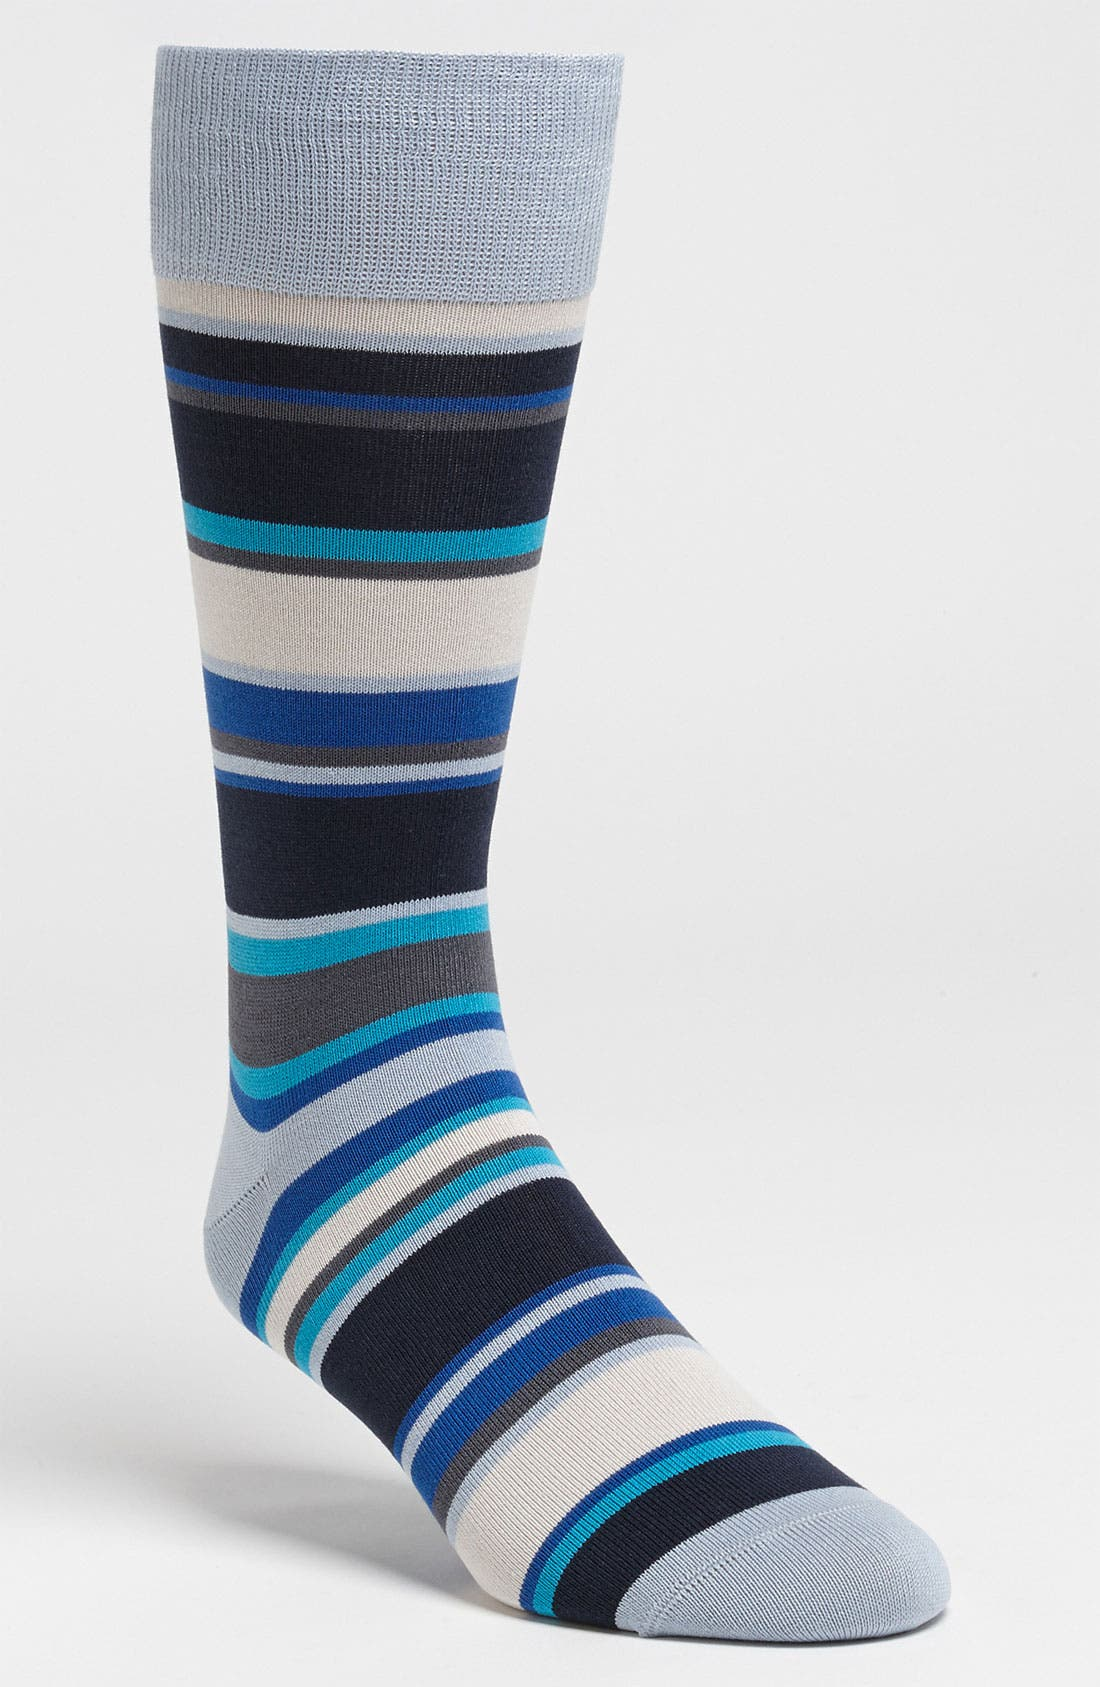 Alternate Image 1 Selected - Paul Smith Accessories 'London' Stripe Socks